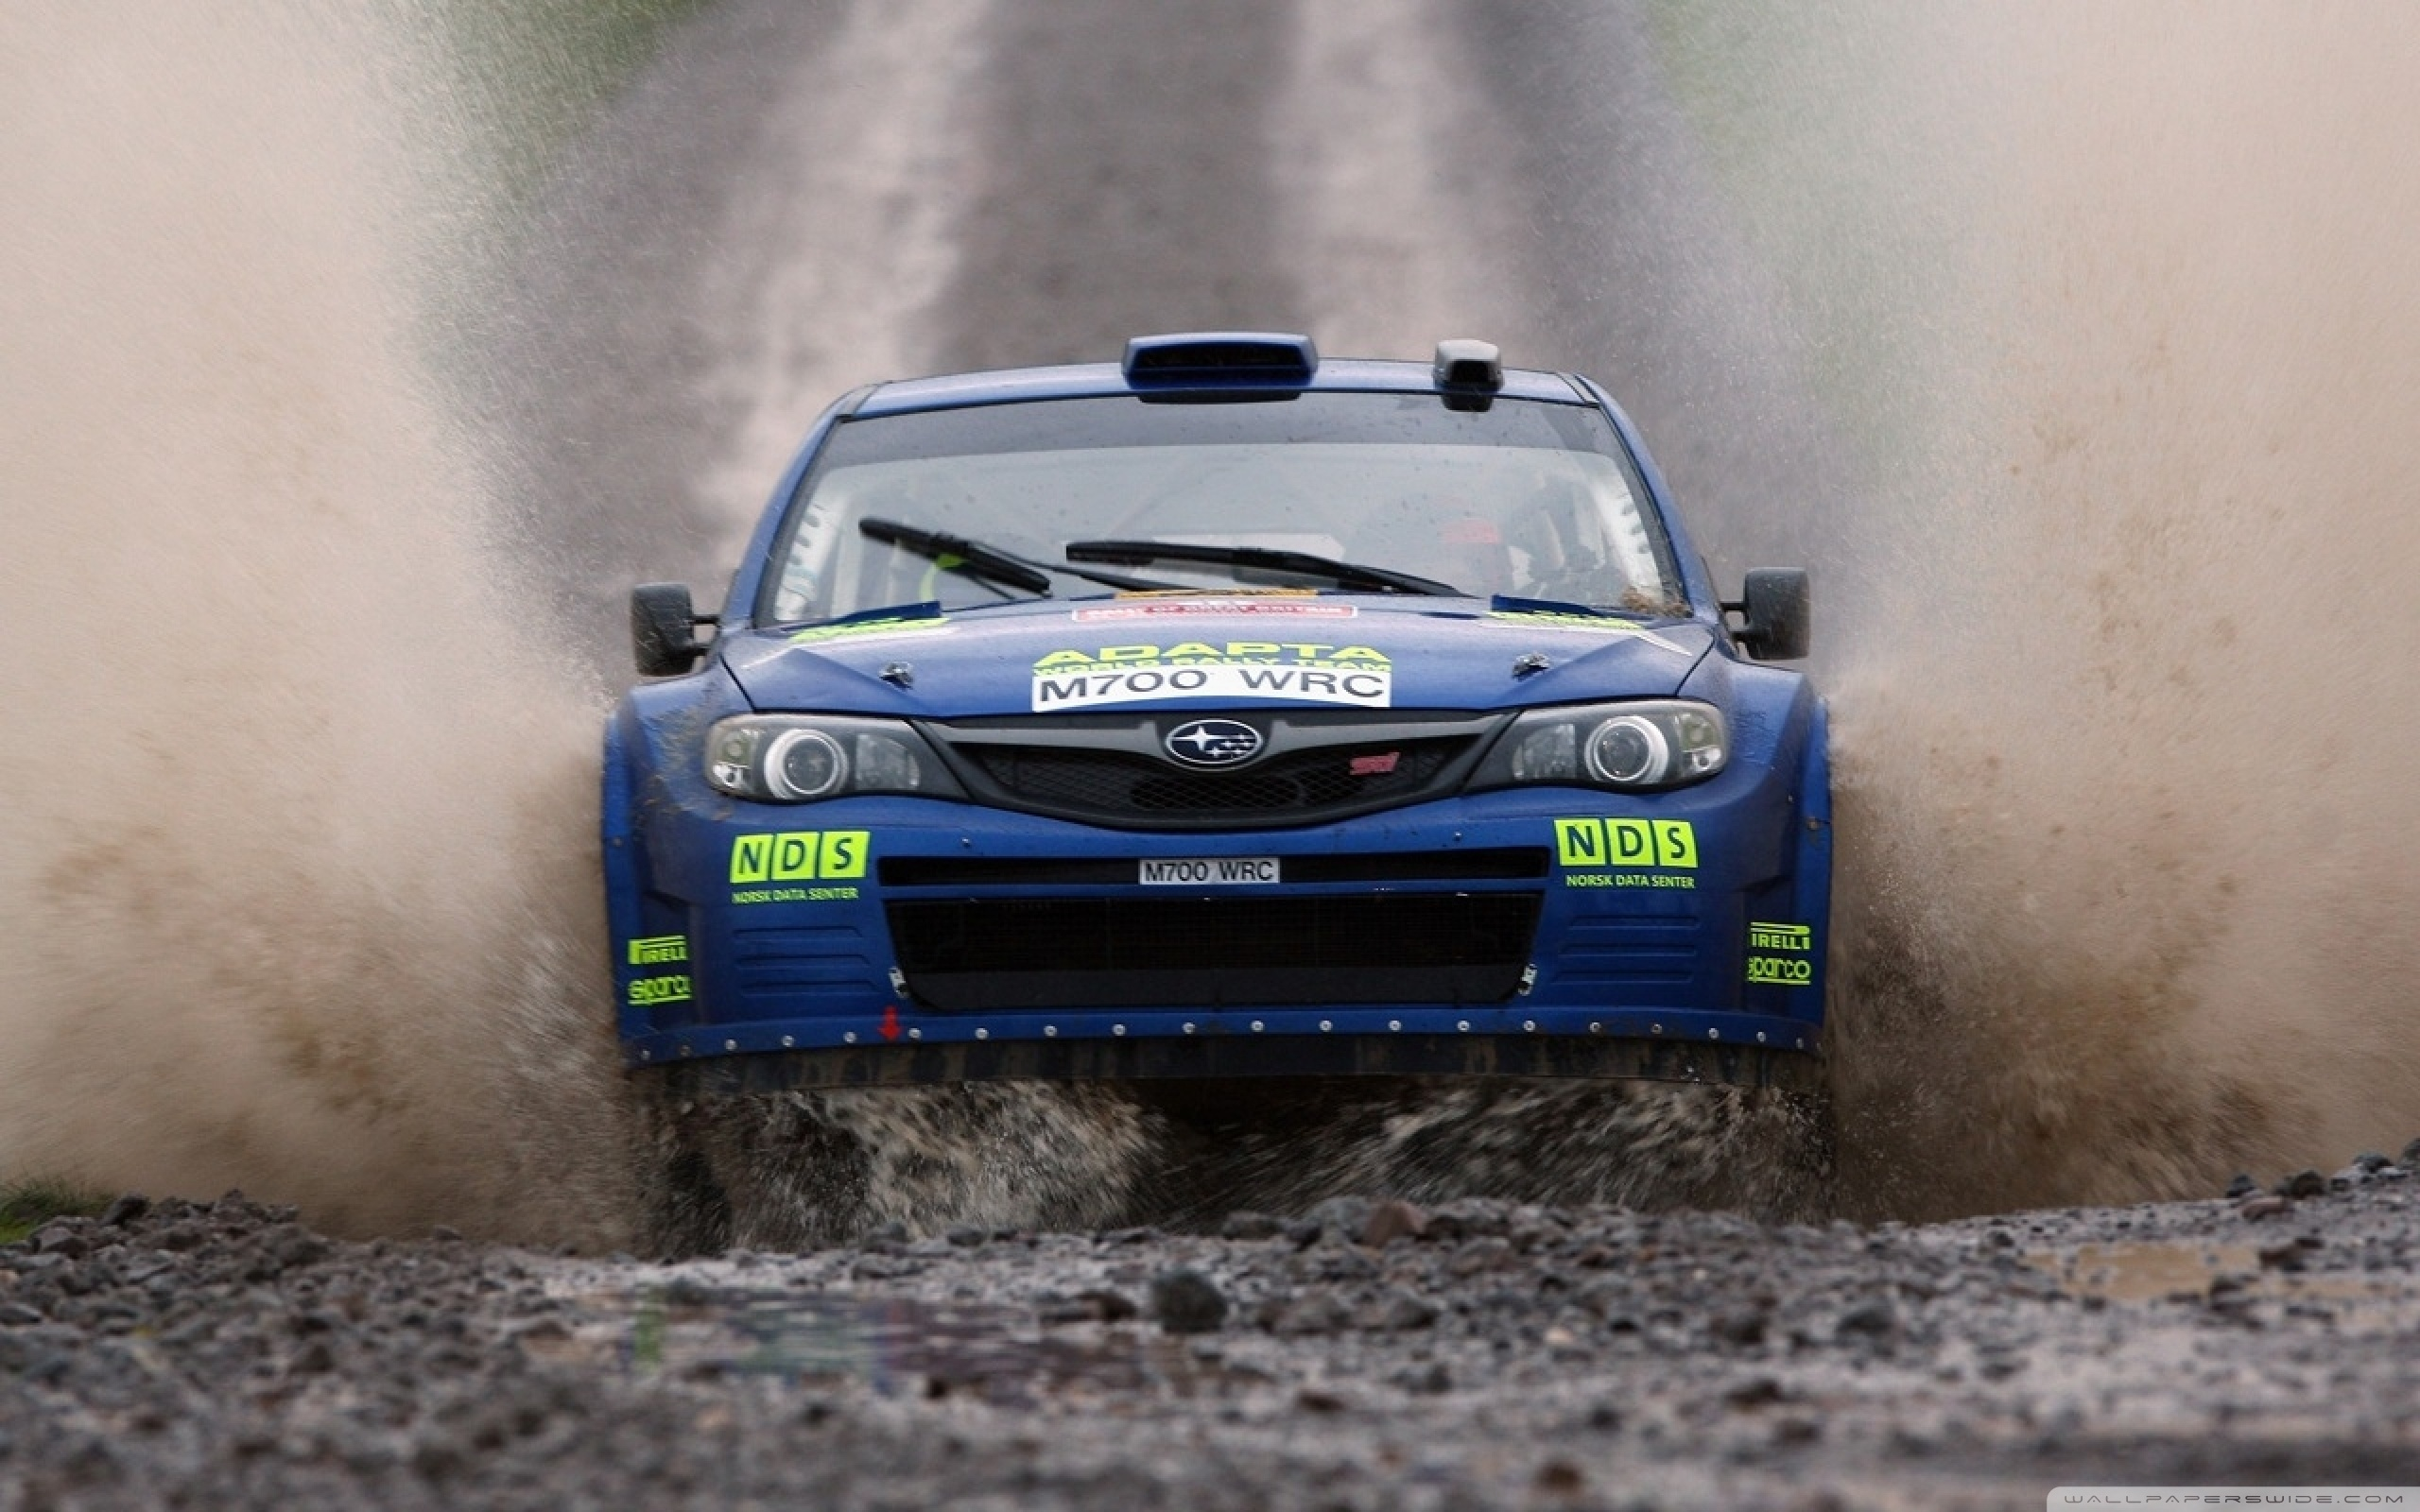 Subaru Impreza Wrx Sti Rally Car Wallpaper Mud Rally 4k Hd Desktop Wallpaper For 4k Ultra Hd Tv